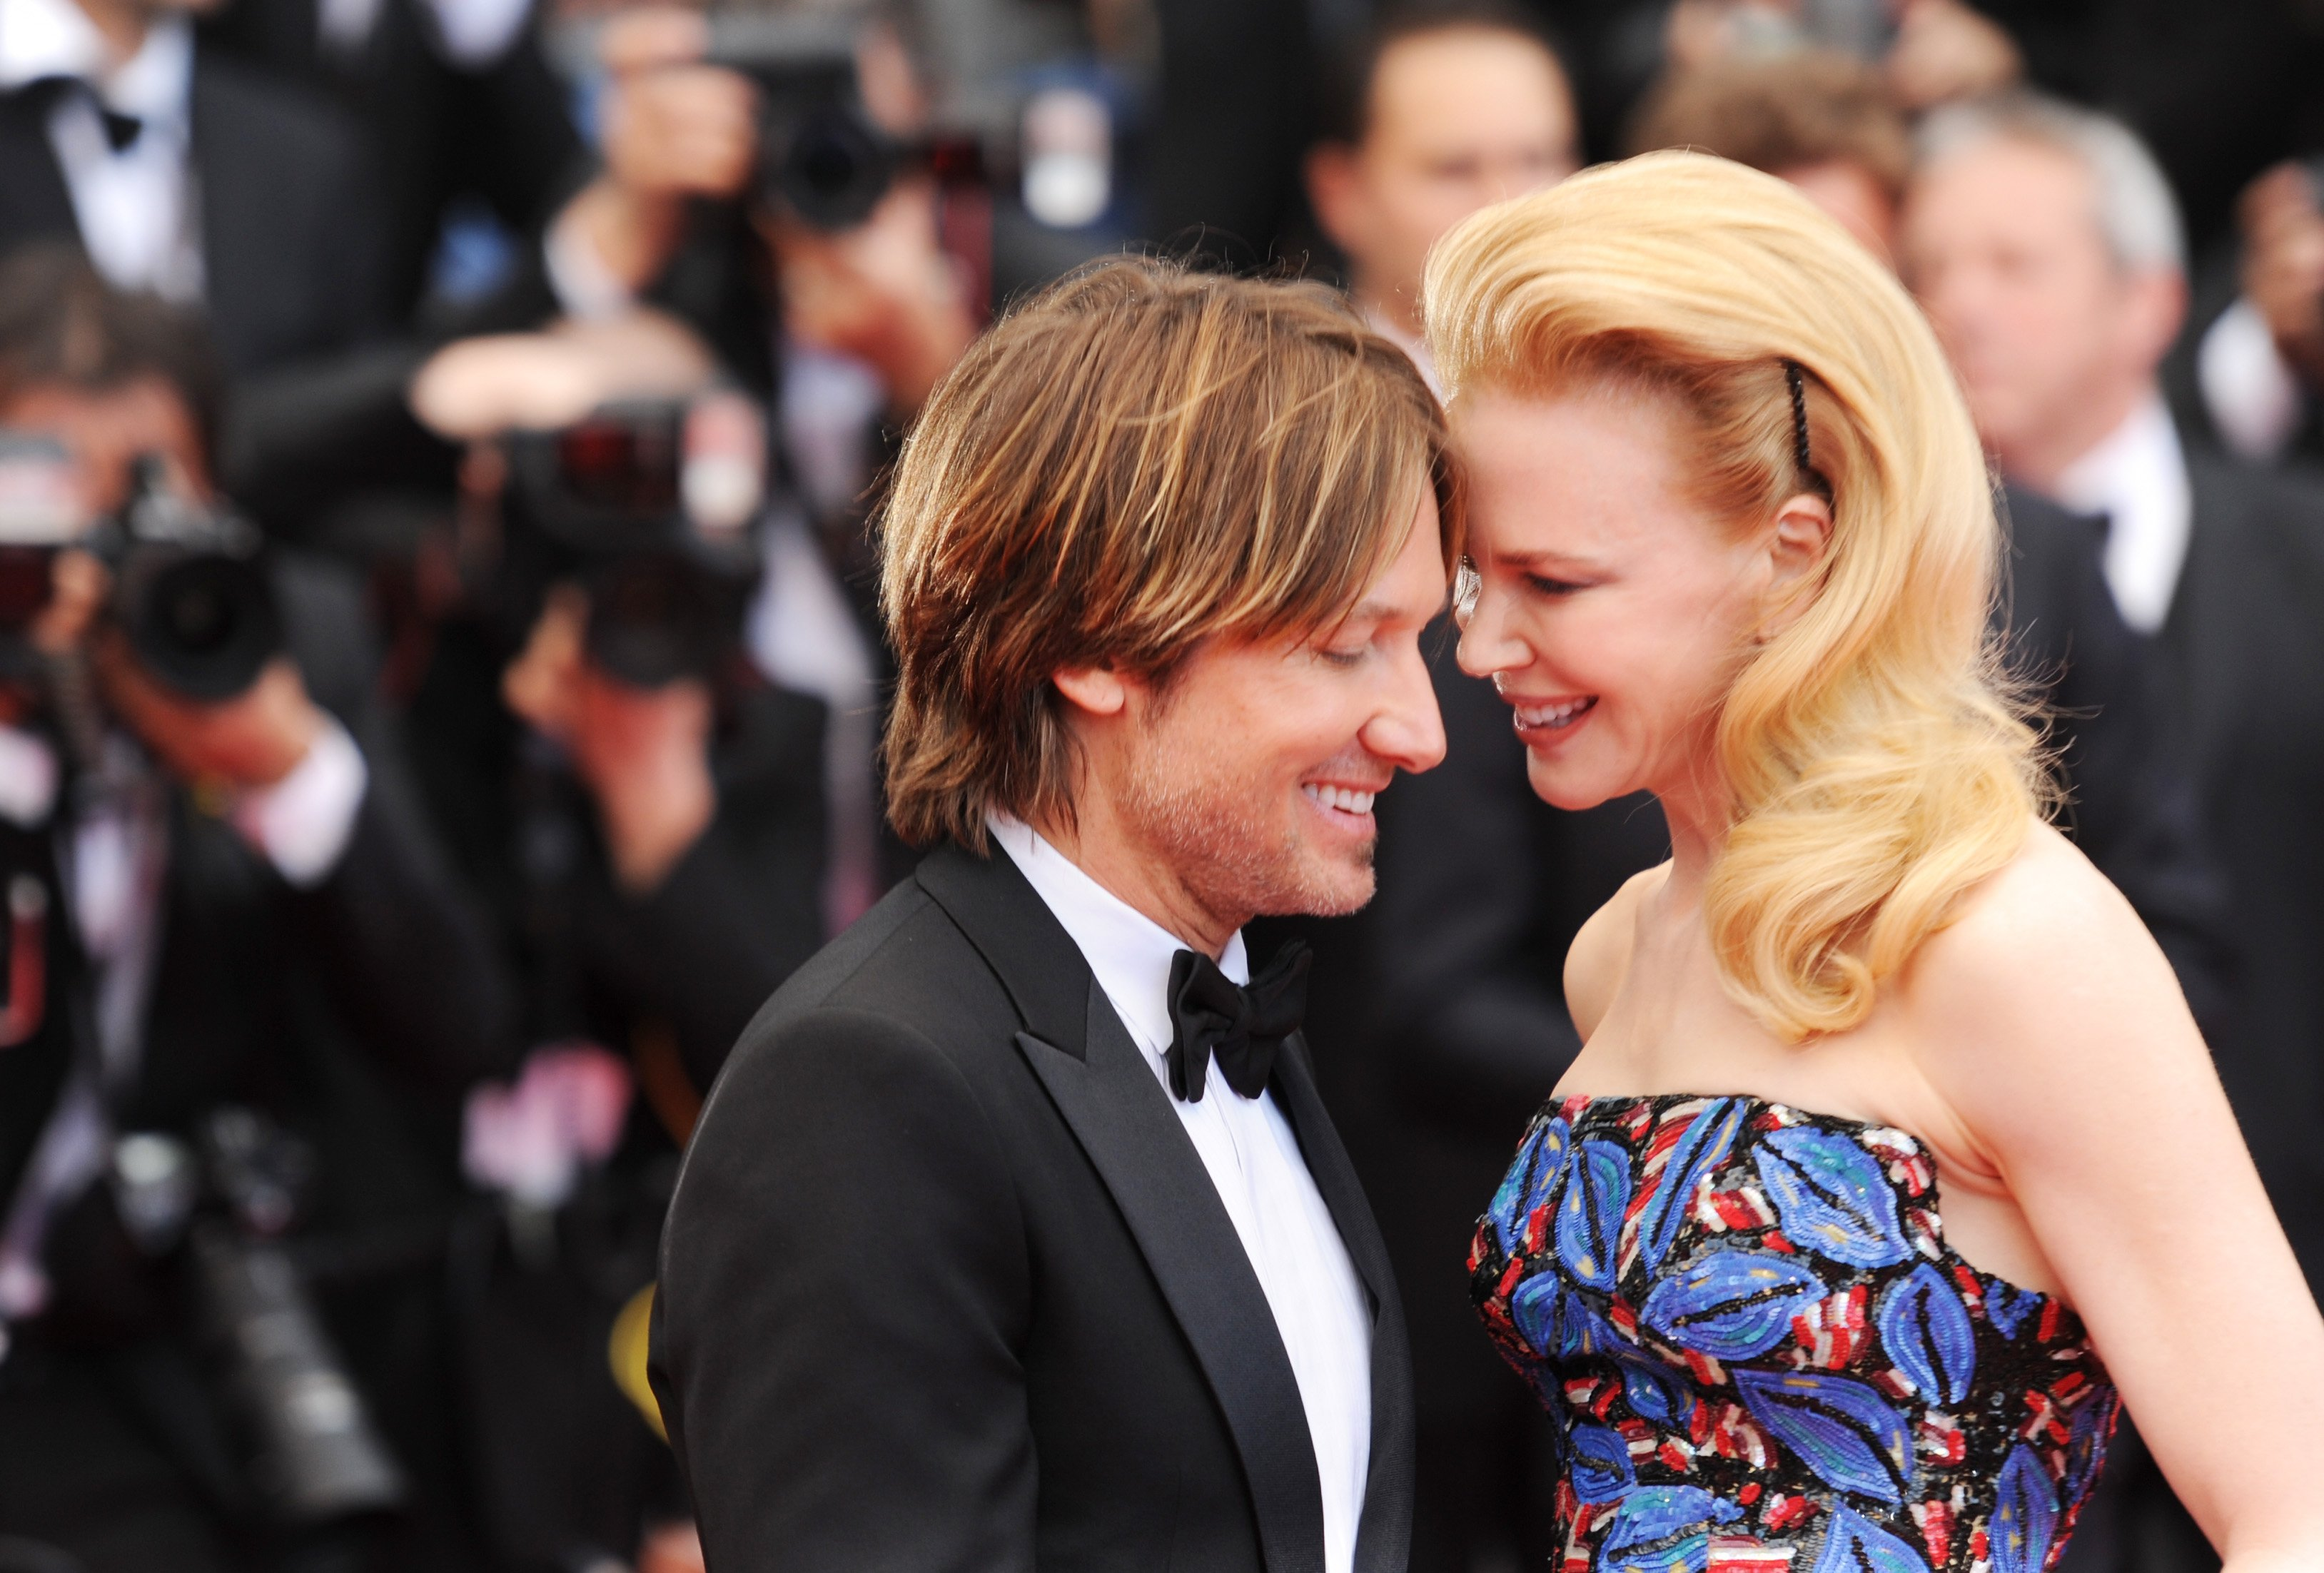 Keith Urban and Nicole Kidman on May 19, 2013 in Cannes, France | Photo: Getty Images